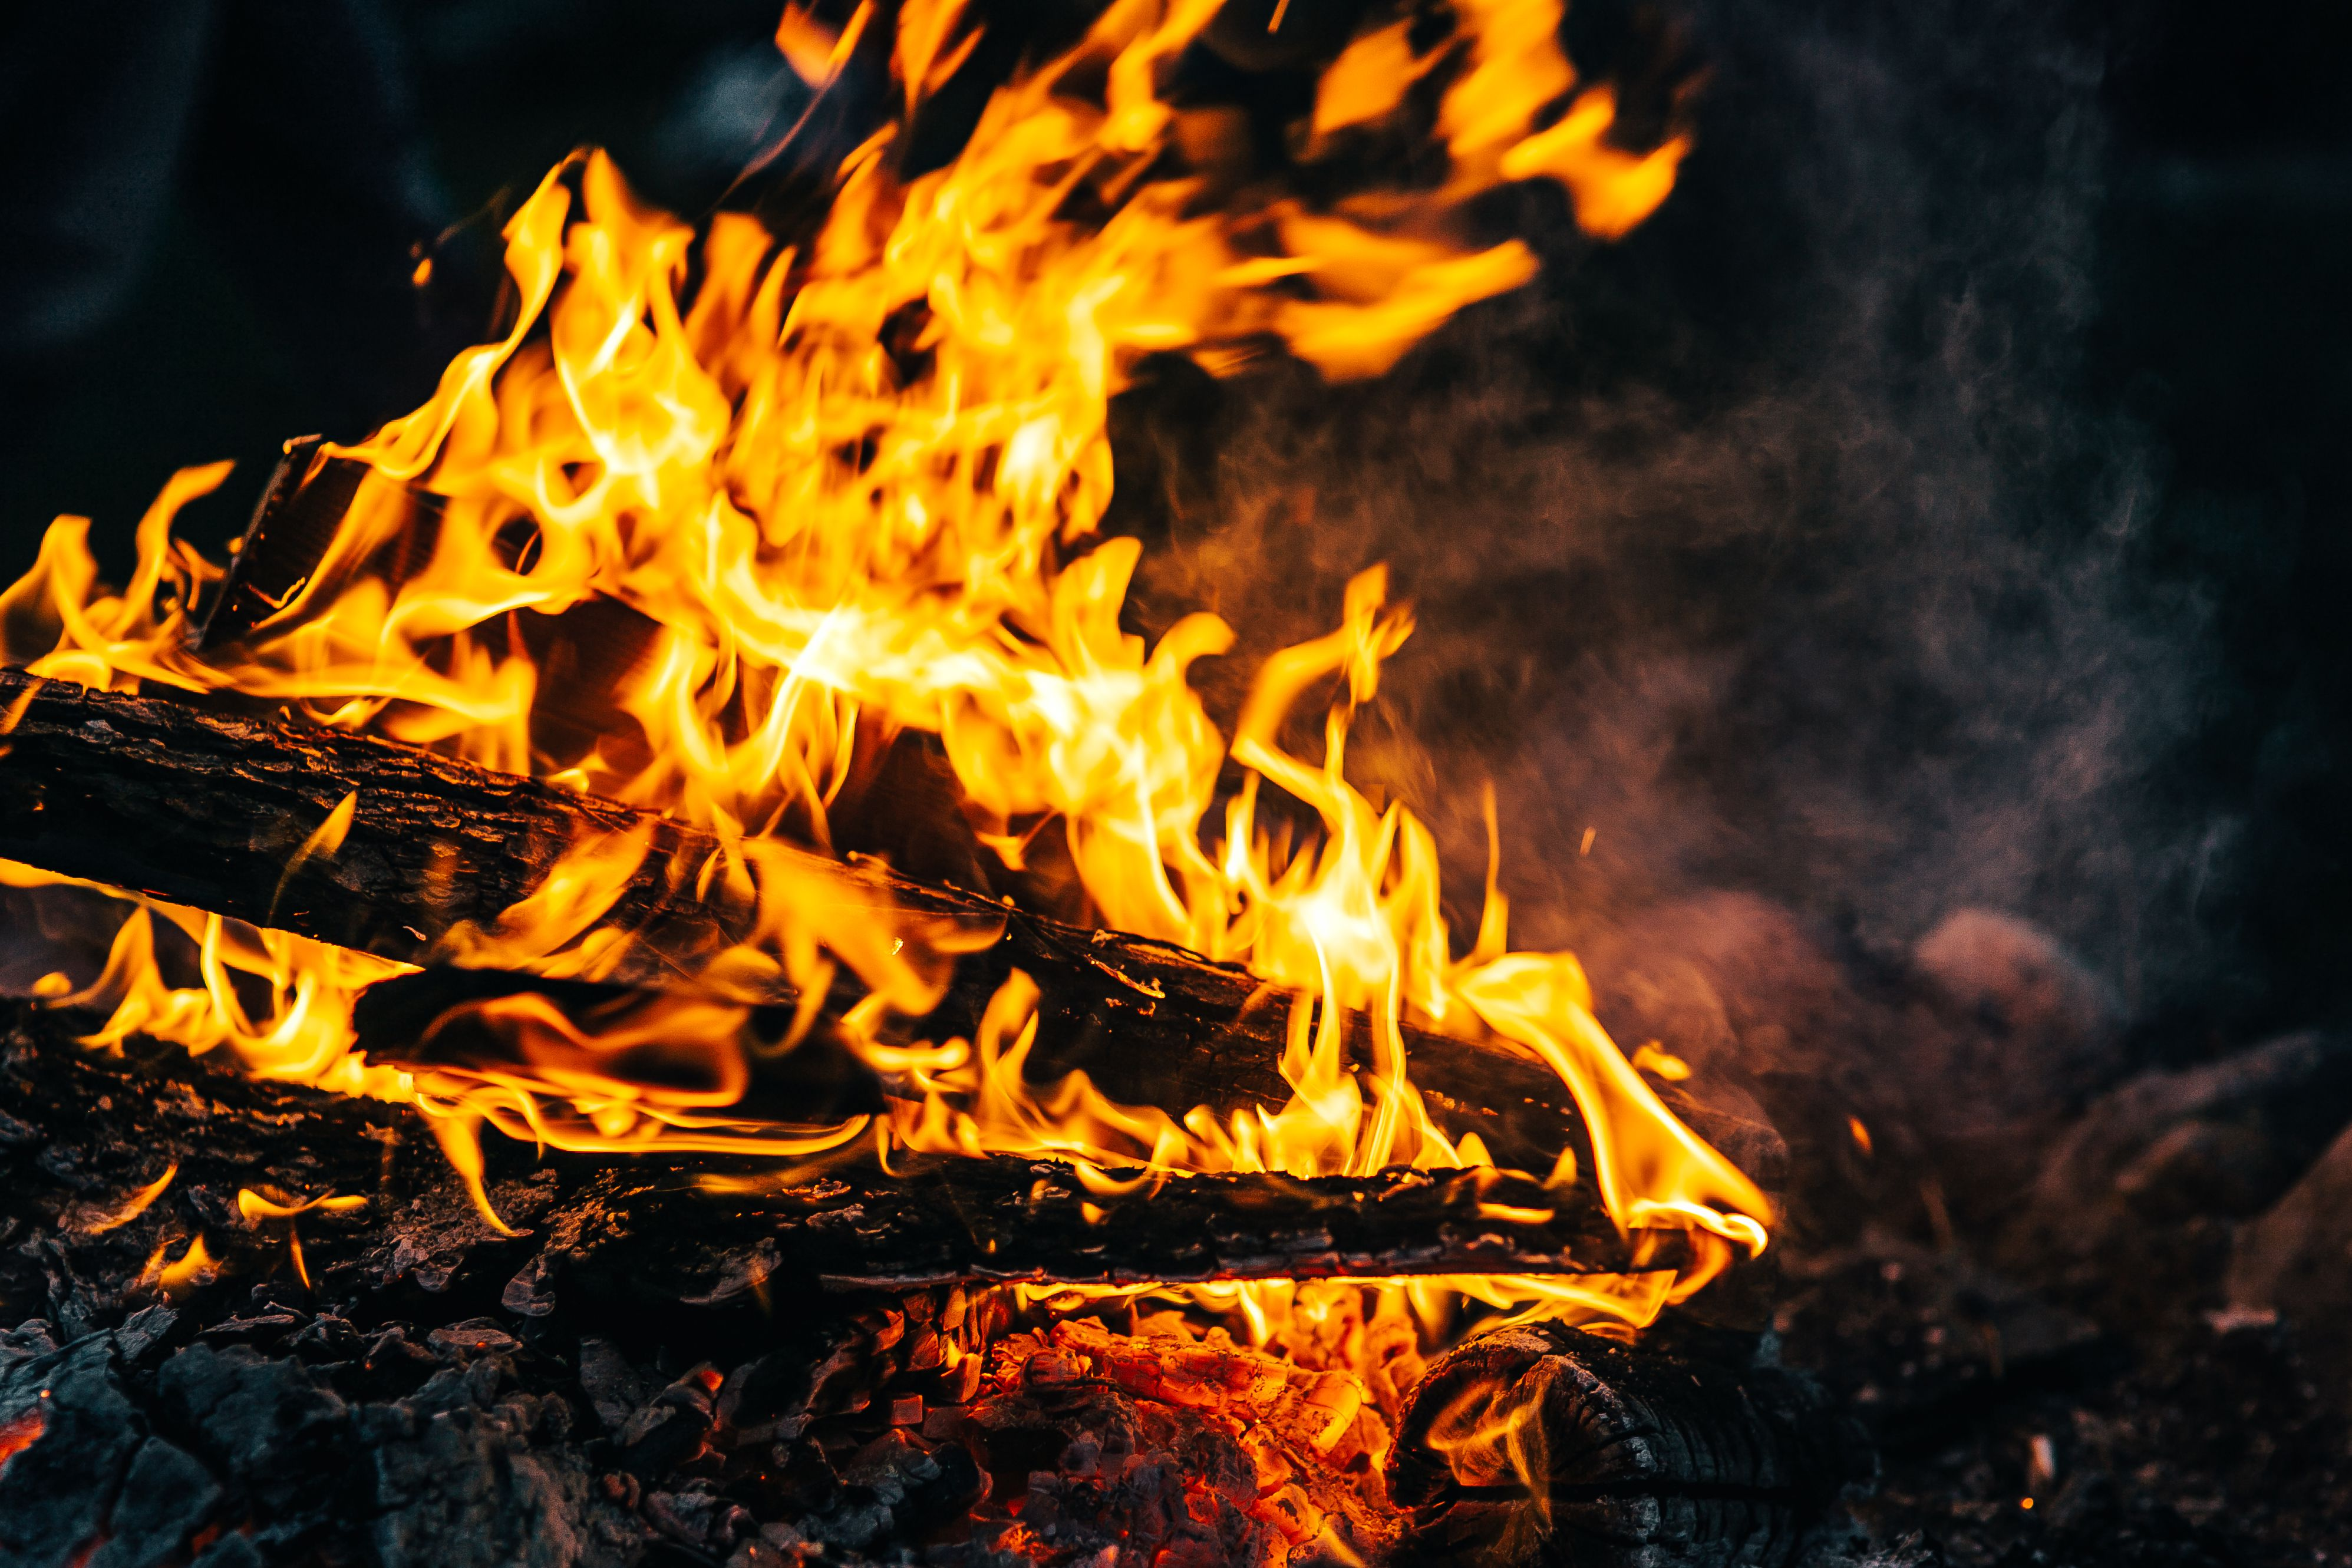 75680 Screensavers and Wallpapers Bonfire for phone. Download Fire, Bonfire, Coals, Flame, Miscellanea, Miscellaneous, Firewood, Ash pictures for free